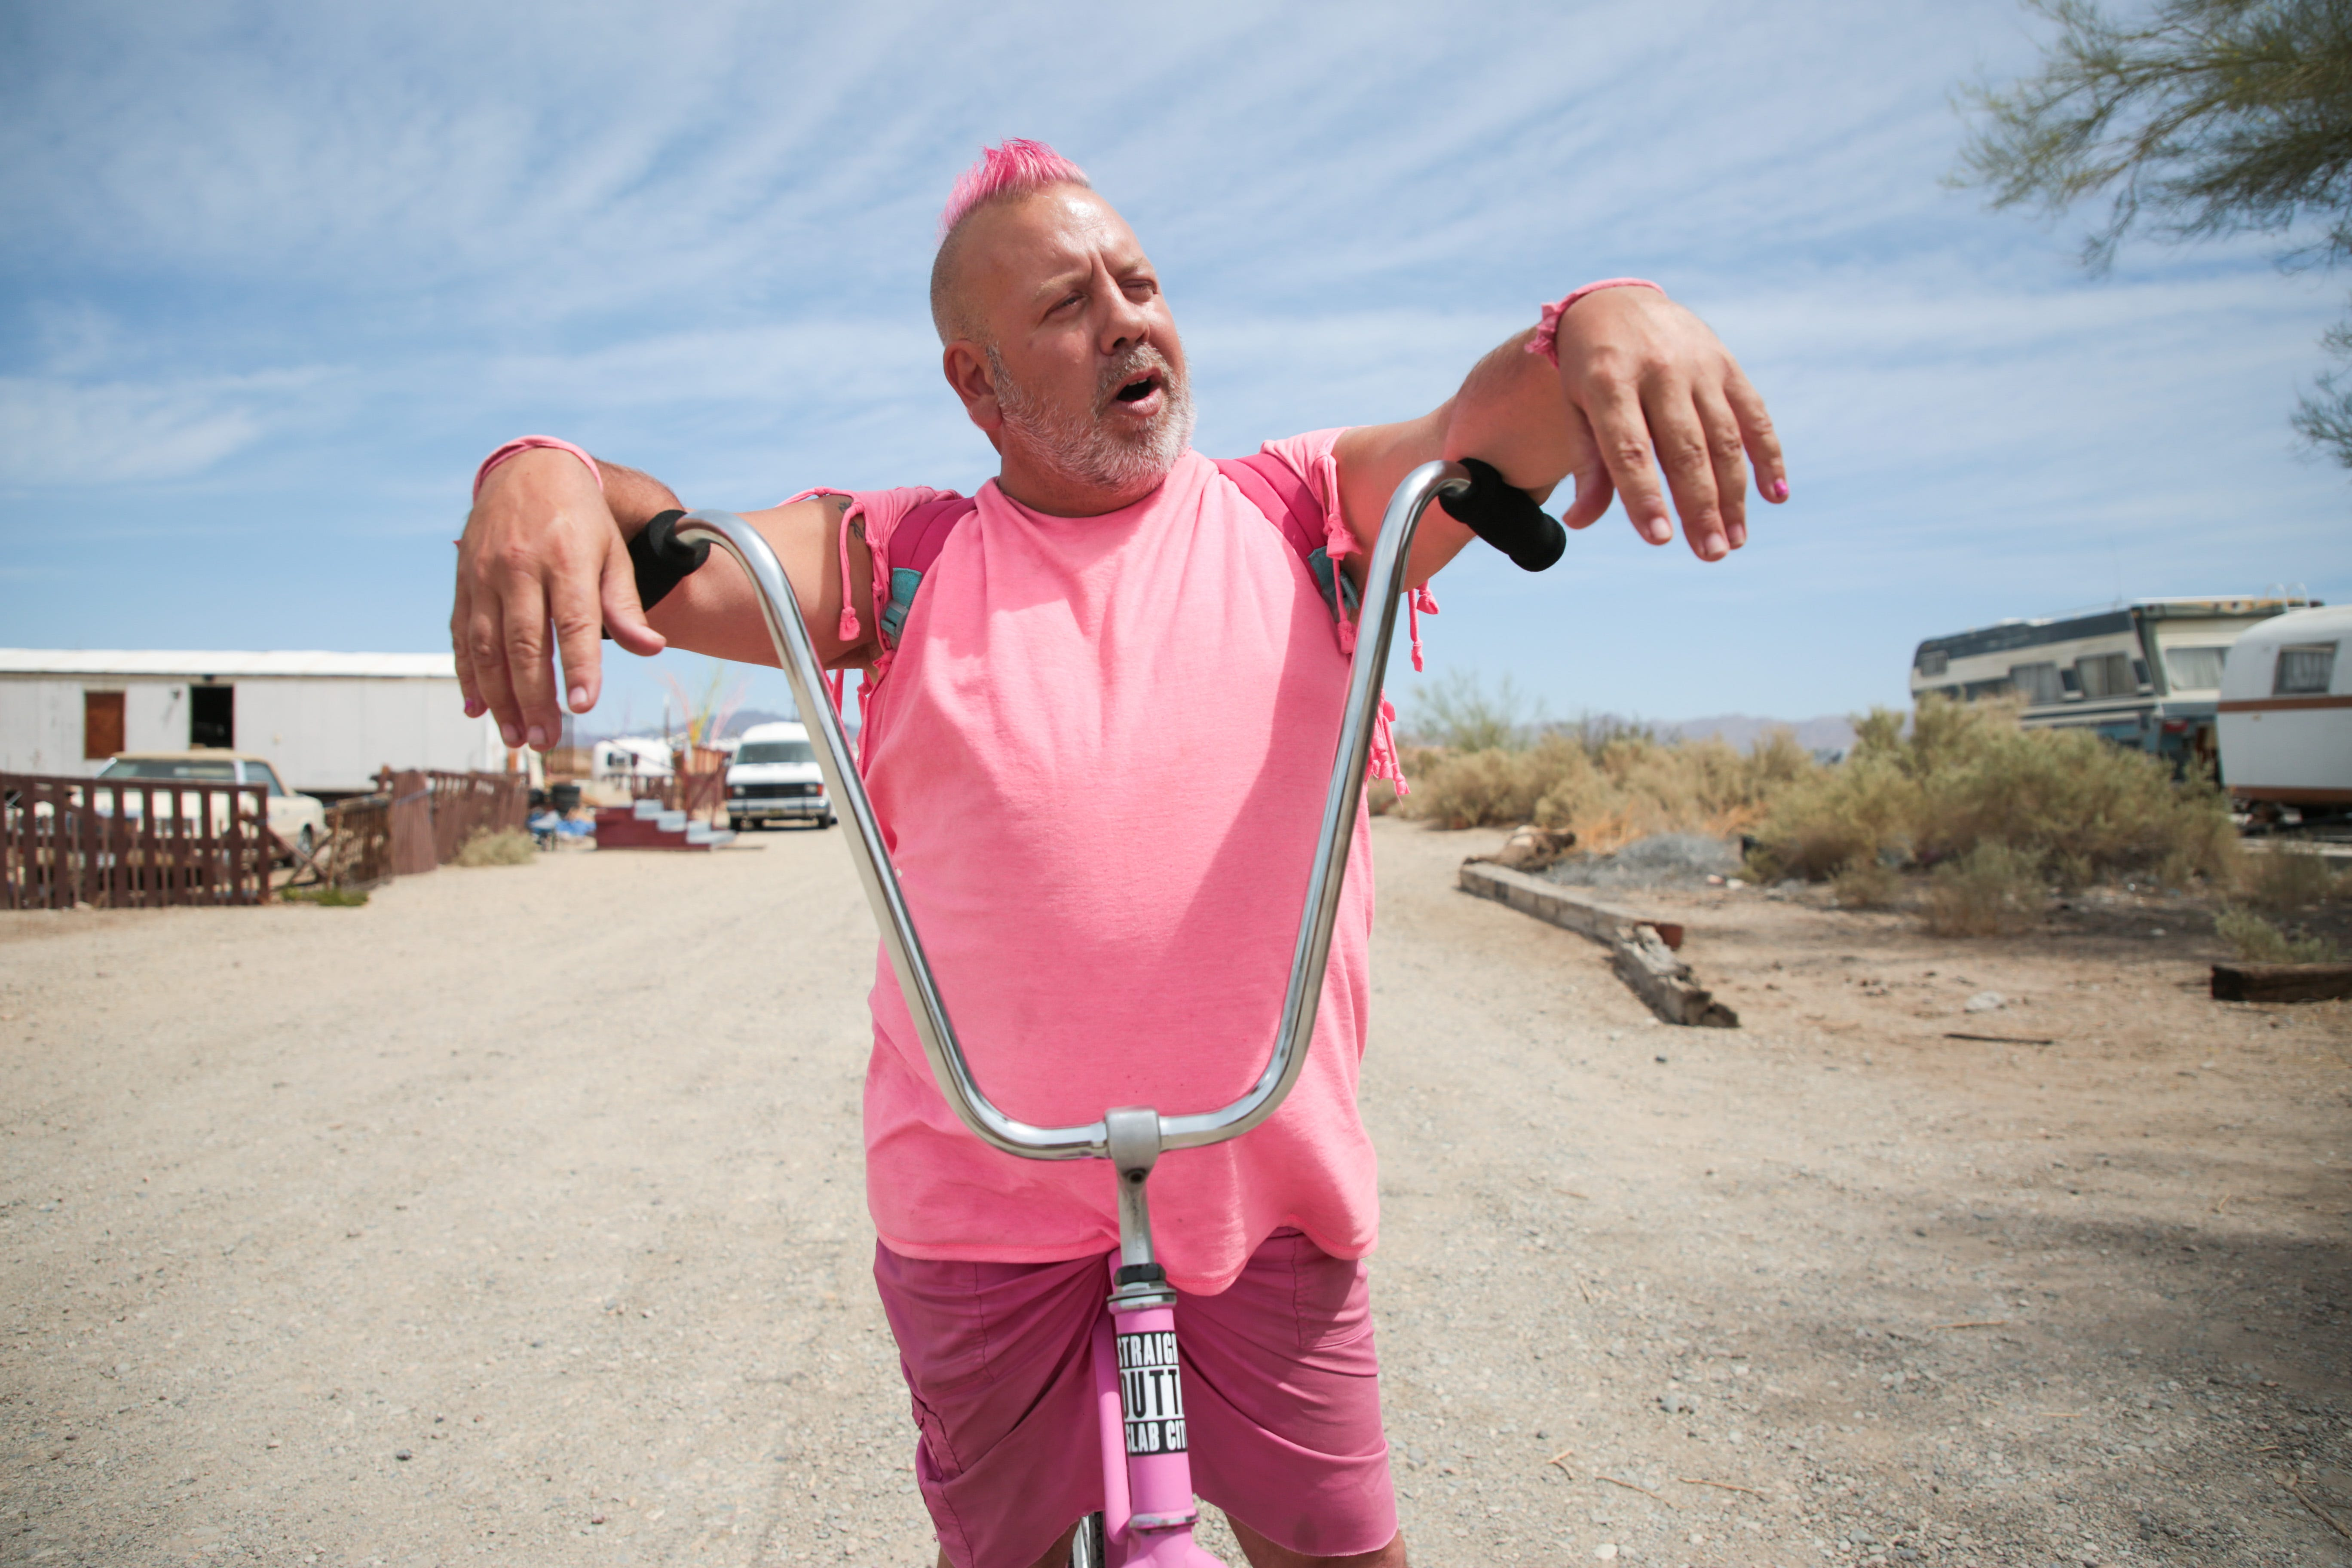 Pink Gorilla stops to chat on his bike in Slab City, Calif., on Monday, April 5, 2021. He said he believes the COVID-19 pandemic is a hoax and will not get the vaccine.